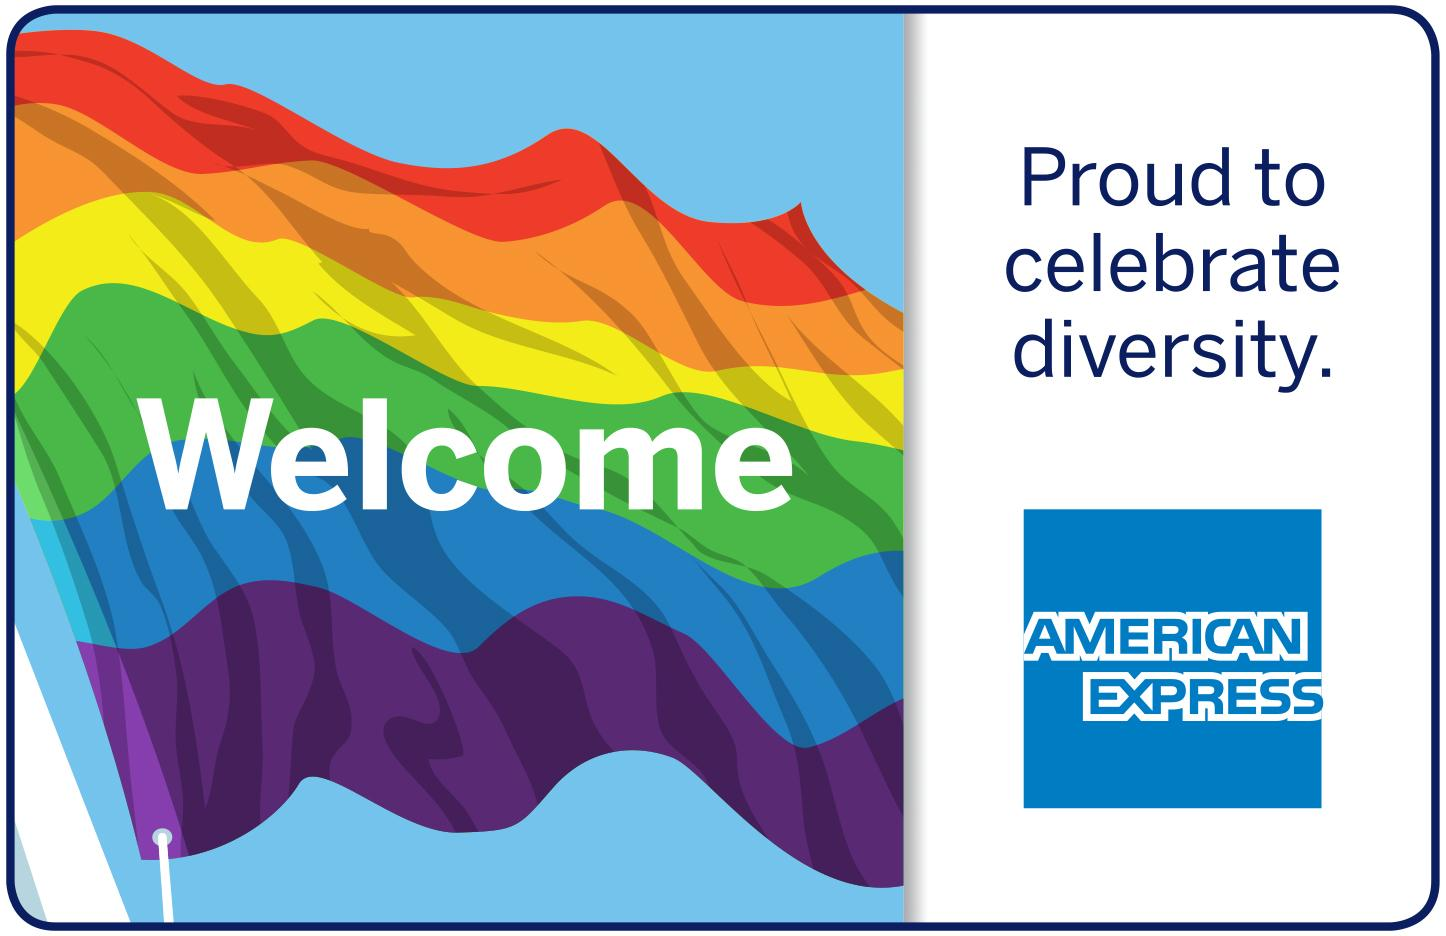 American Express pledges $1bn to promote racial, ethnic and gender equity